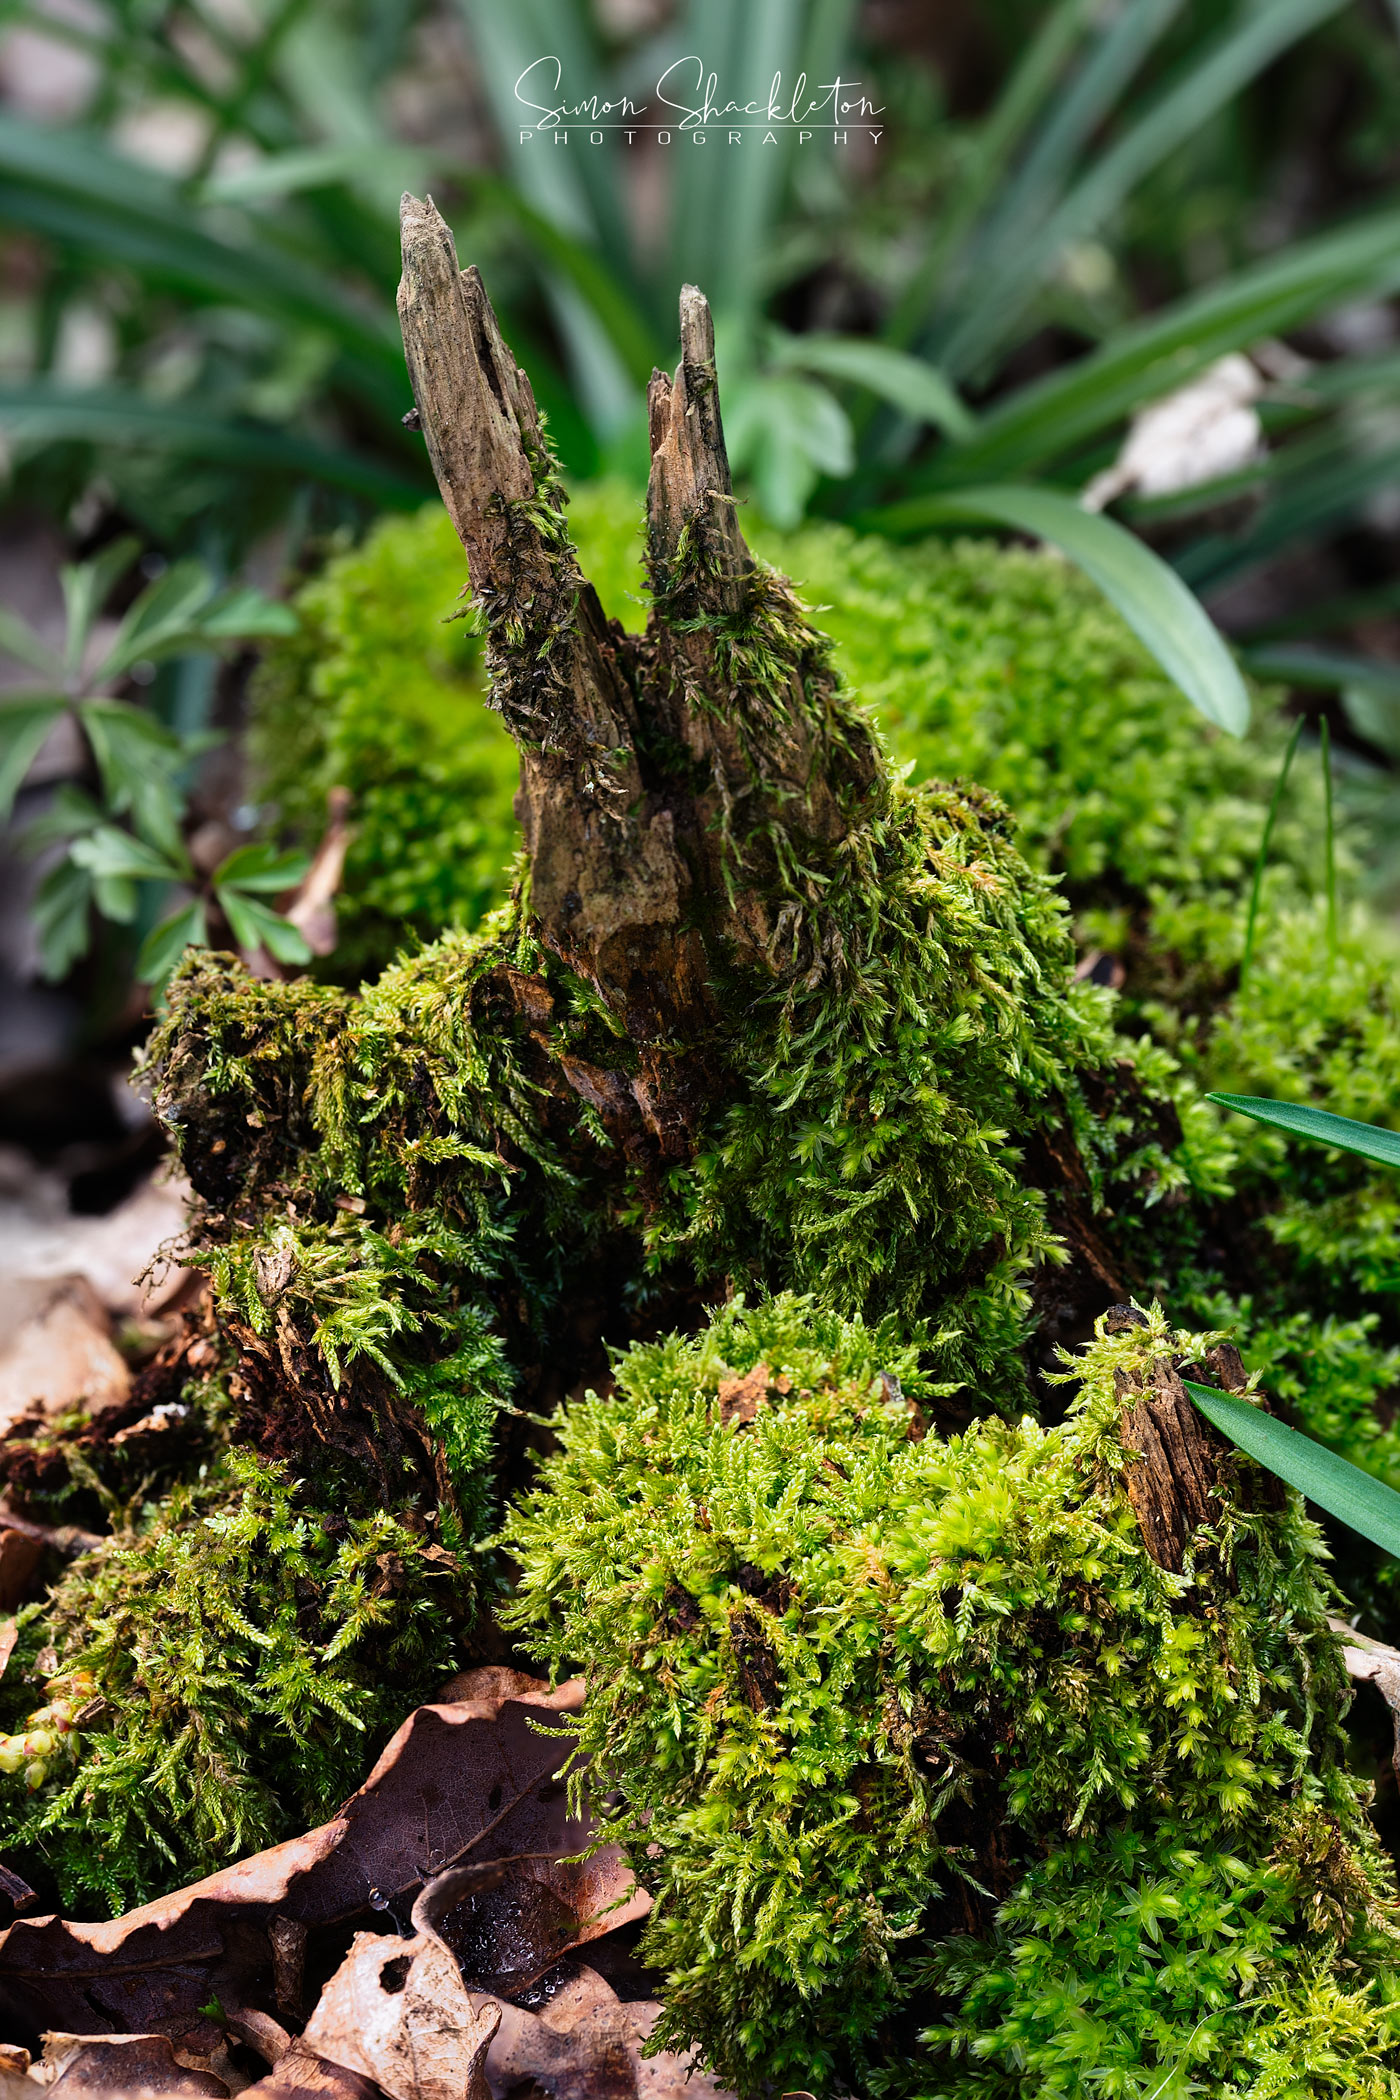 A perfect miniature ecosystem, in the woods.